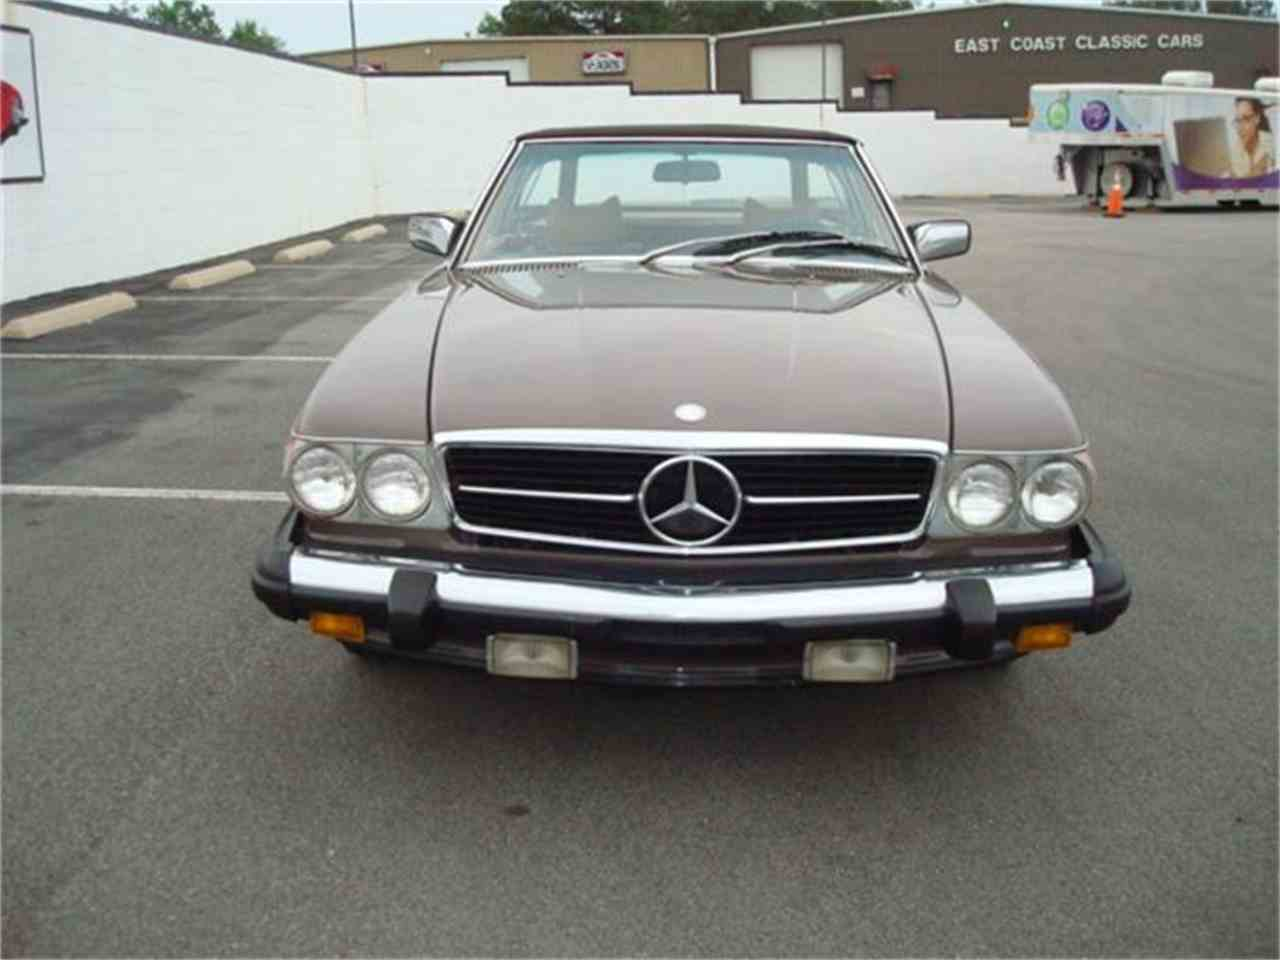 Large Picture of '77 Mercedes-Benz 450SL located in North Carolina - $11,500.00 Offered by East Coast Classic Cars - 369A